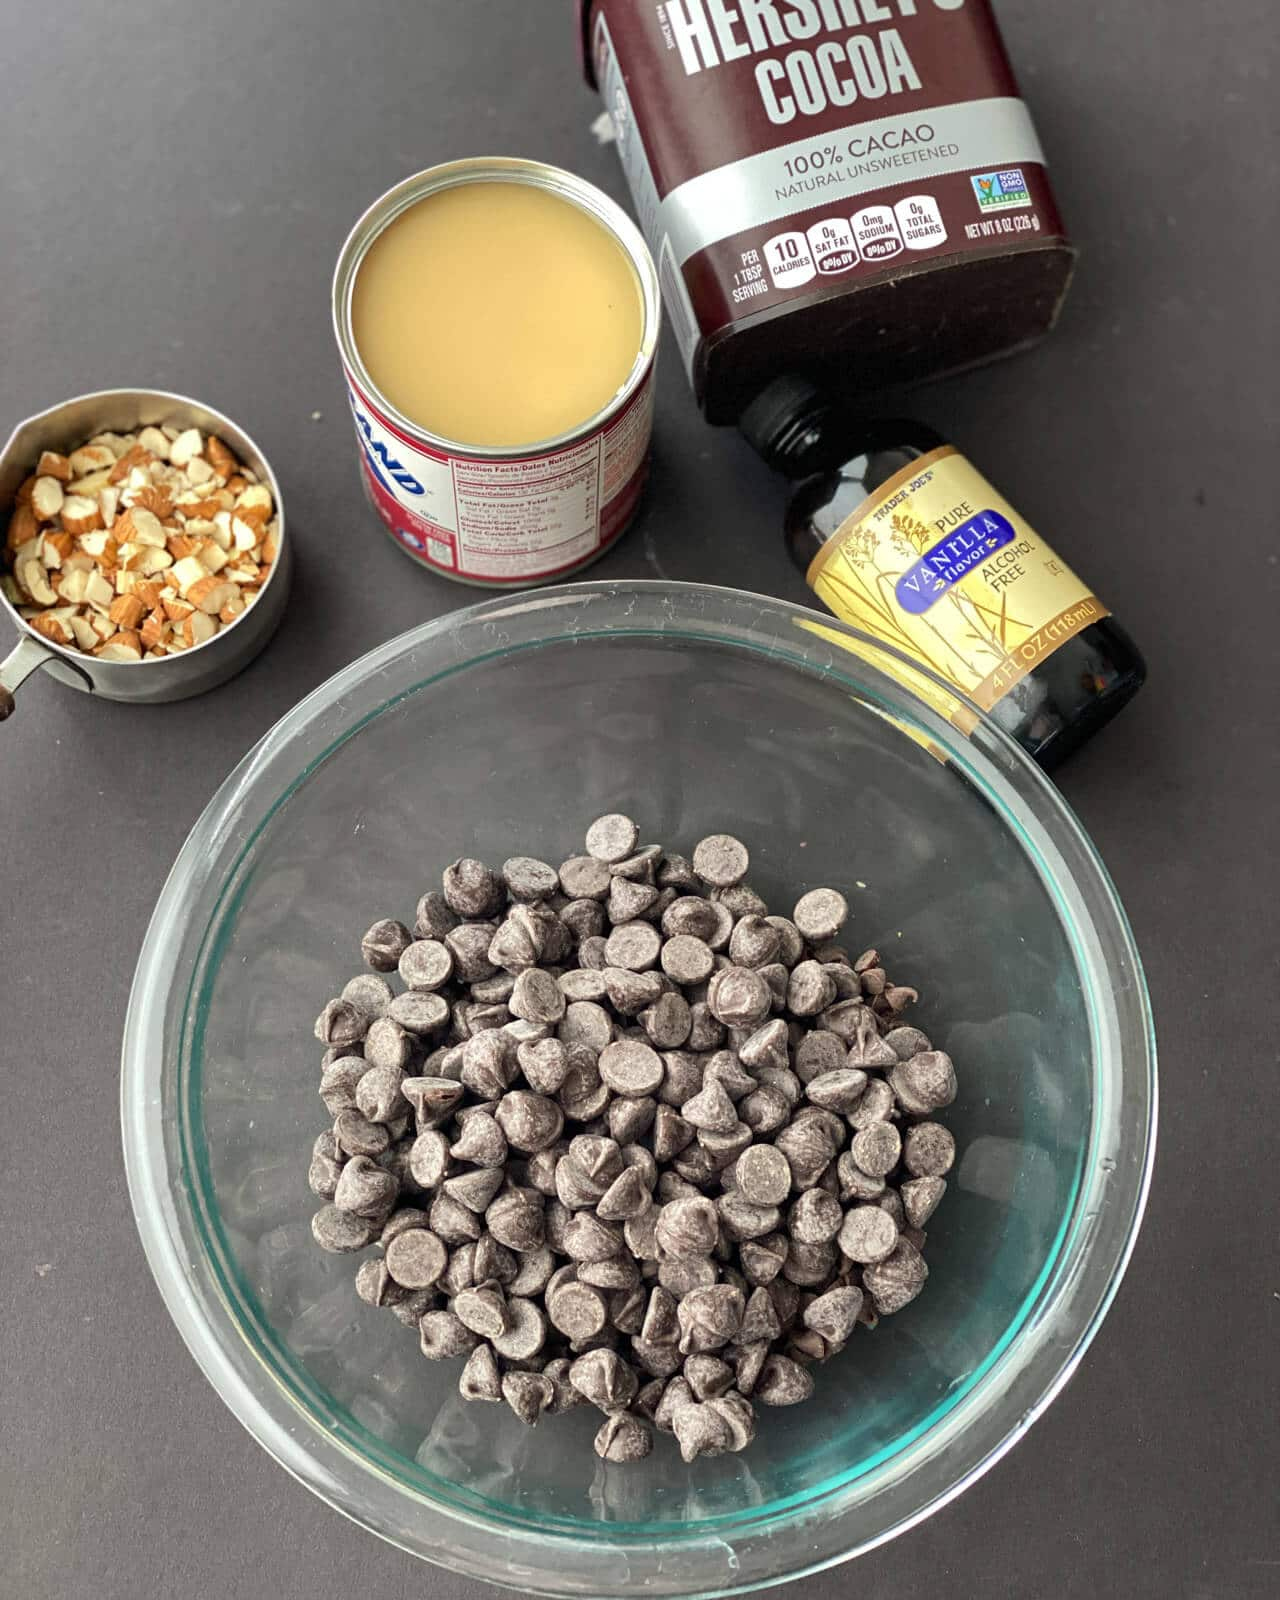 chocolate chips in a glass bowl with vanilla essence, chopped almonds, condensed milk and cocoa powder on the side